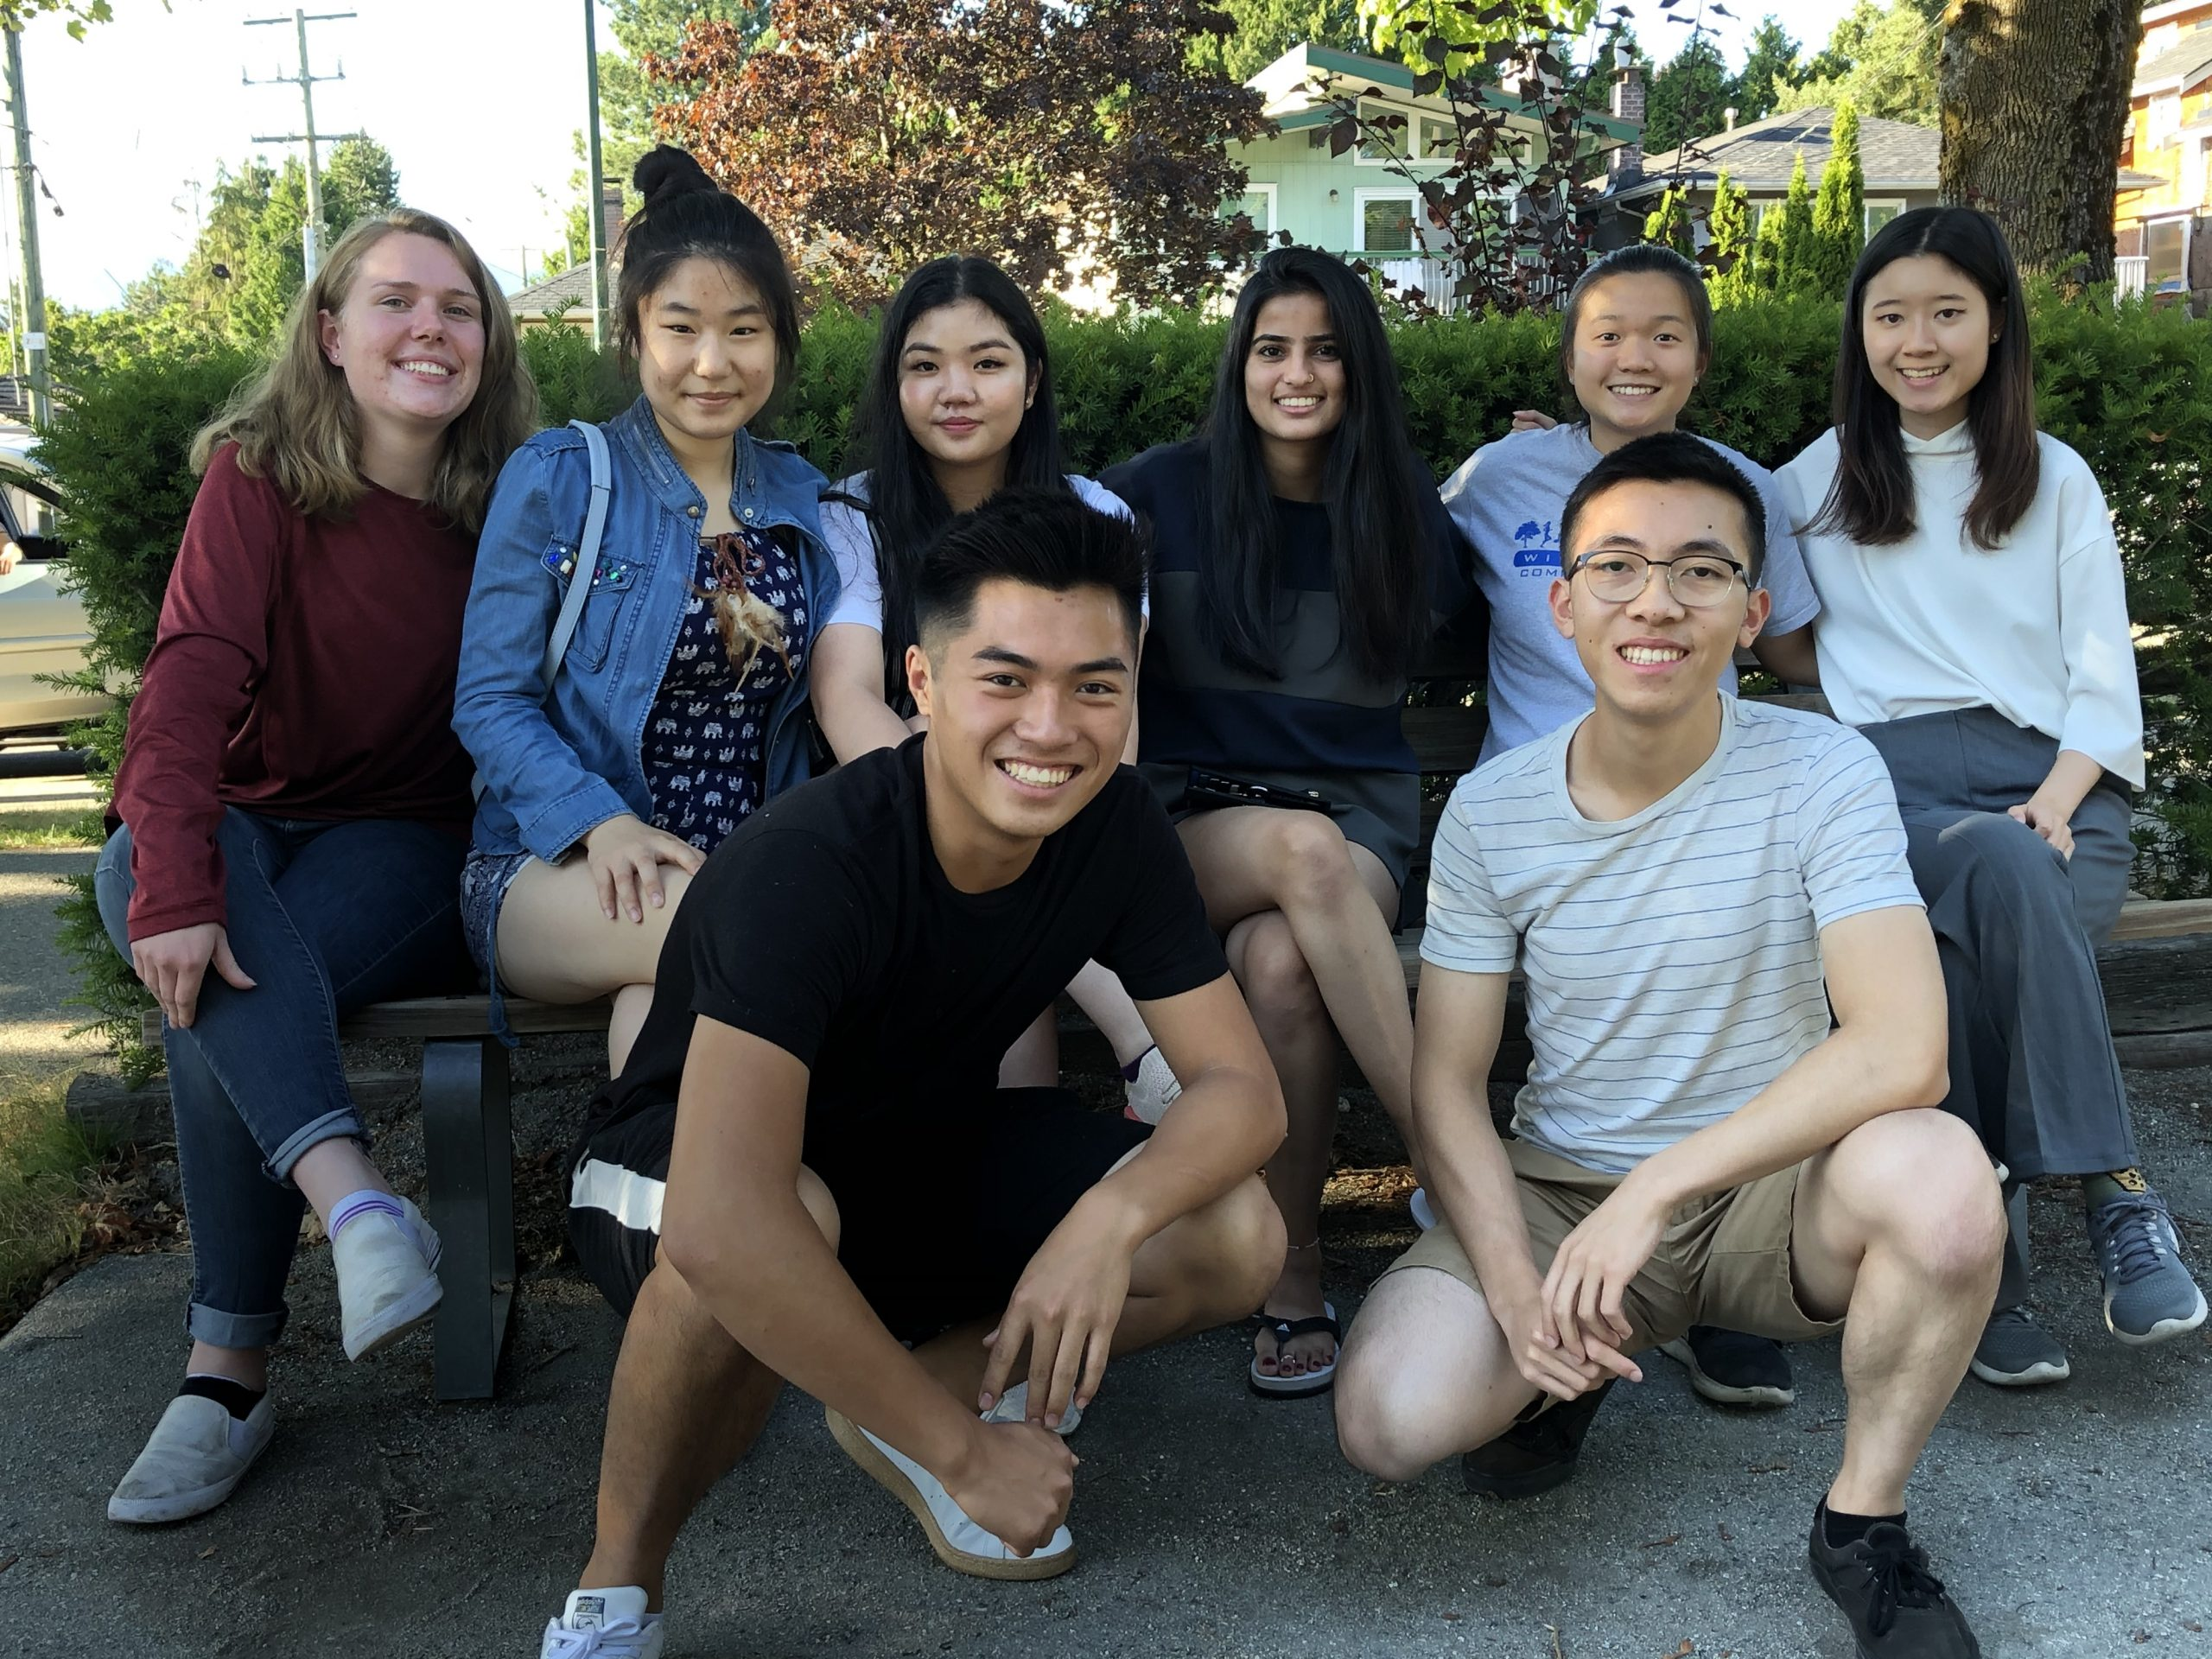 (Clockwise from top left) Daisy Martin-Moore, Maggie Fong, Kim Ho, Jasmine Garcha, Janette Chen, Katie Wan, Angus Ho, Anson Chow